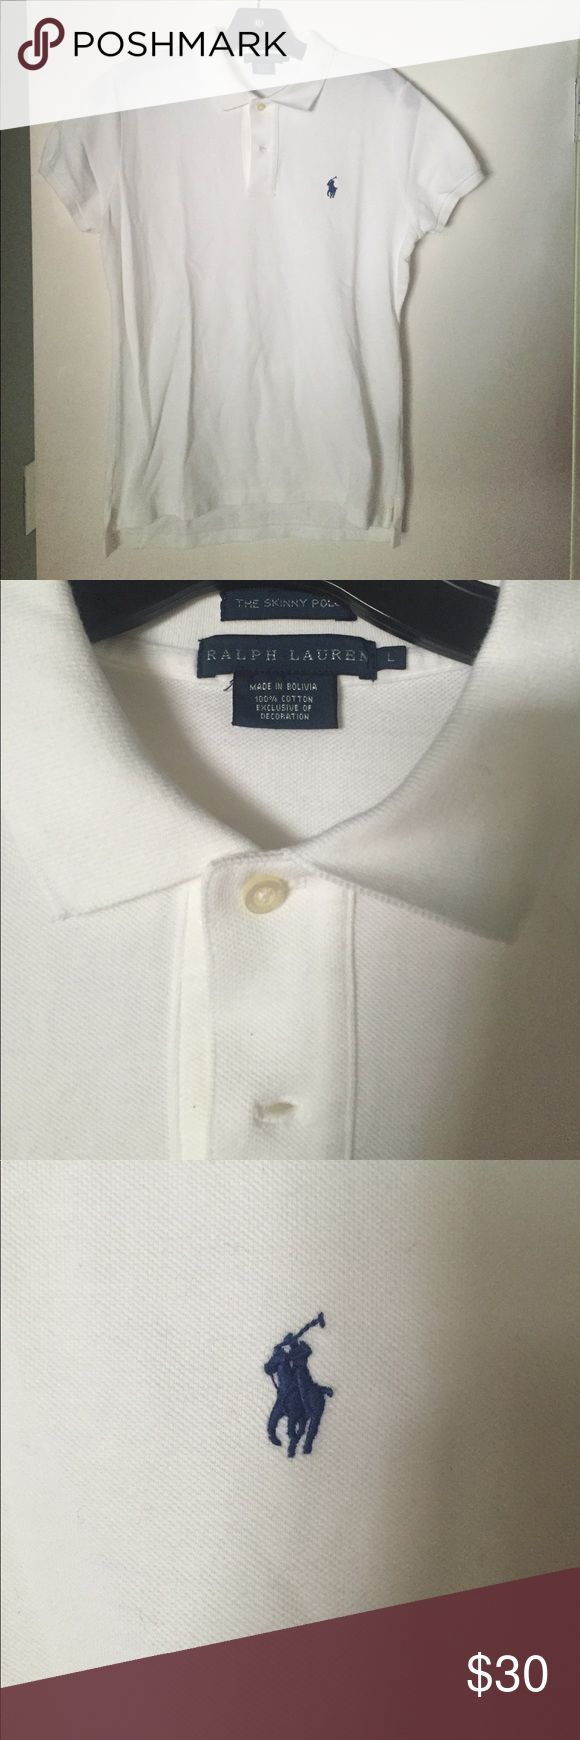 Ralph Lauren Skinny White Polo Collared Shirt Ralph Lauren The Skinny Polo White Collared Shirt.  In excellent condition with no stains, holes, etc.  Worn twice ❤️ Ralph Lauren Tops Button Down Shirts